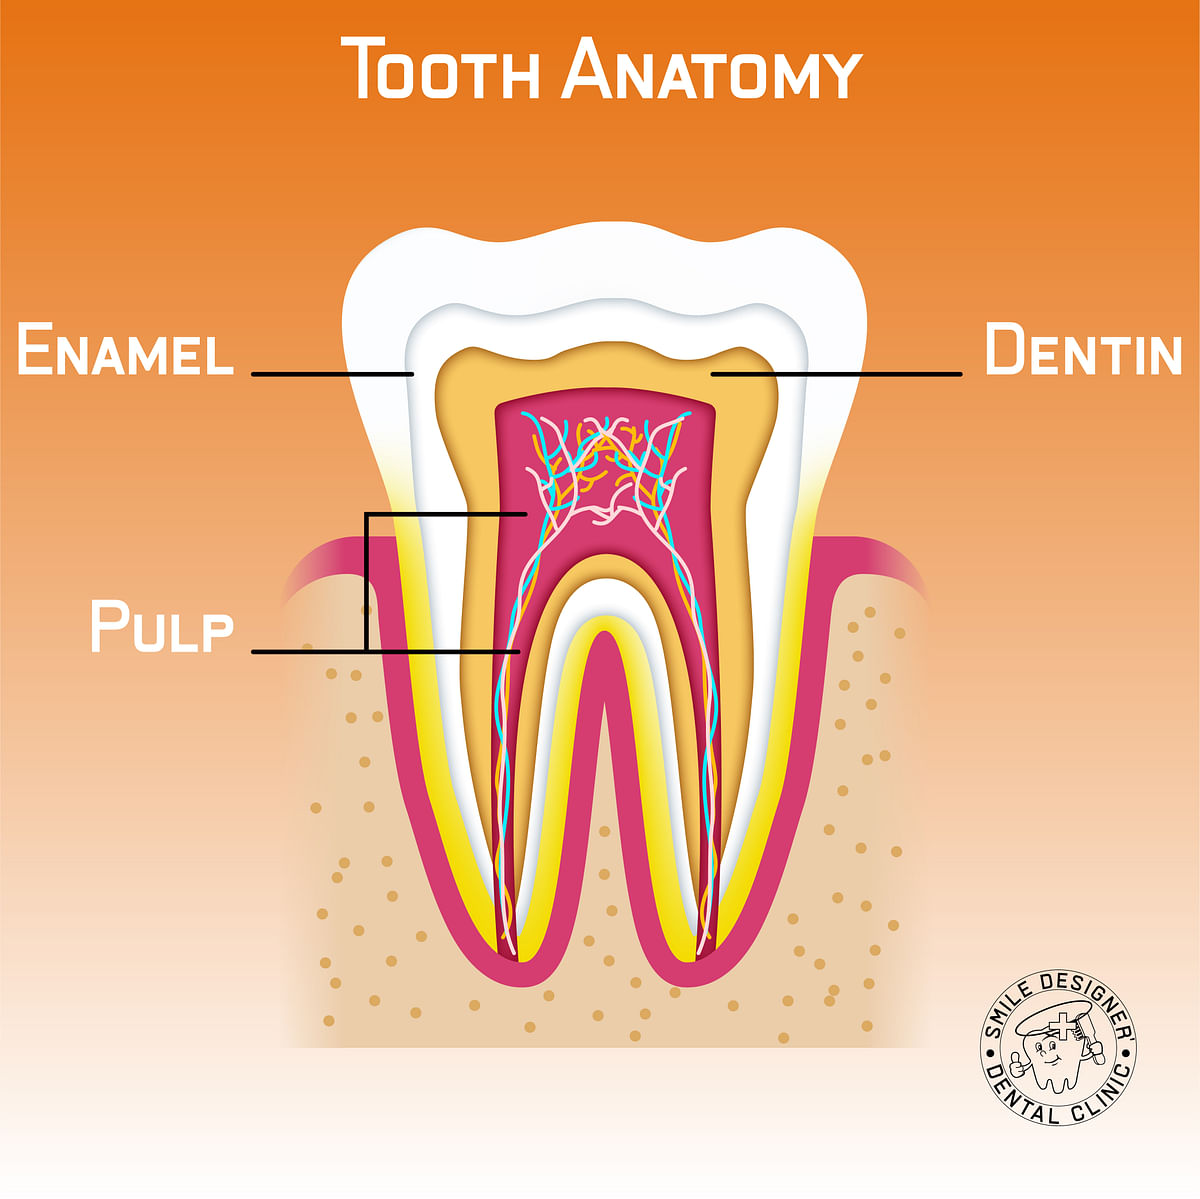 What constitutes a tooth